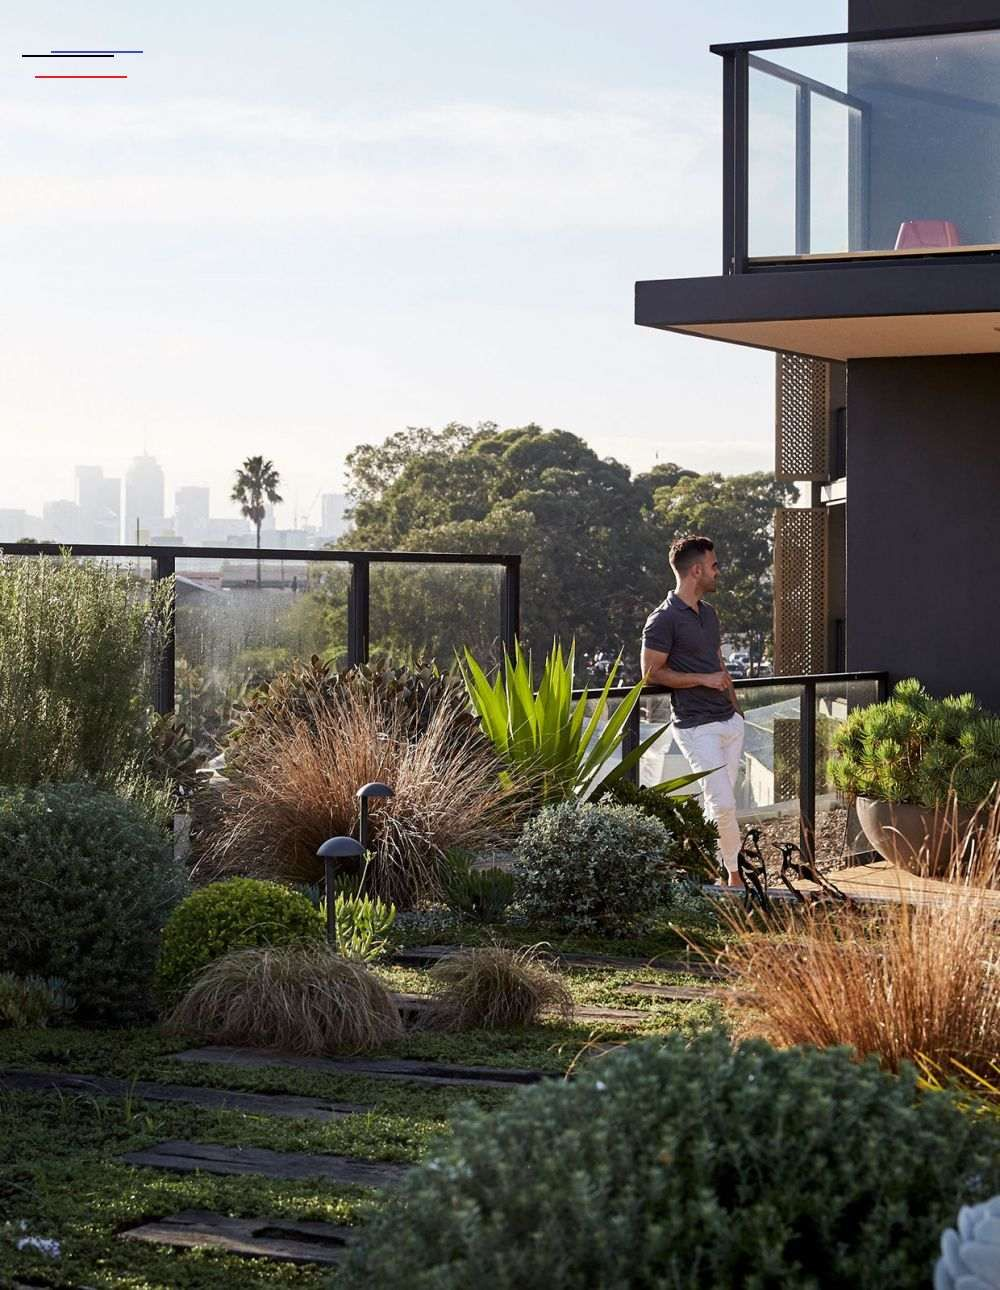 A Robust Rooftop Garden In Rozelle Terracegardendesign Klaus And Anne Schindhelm Share Their Expansive Apa Dachgarten Landschaftsdesign Gartendesign Ideen